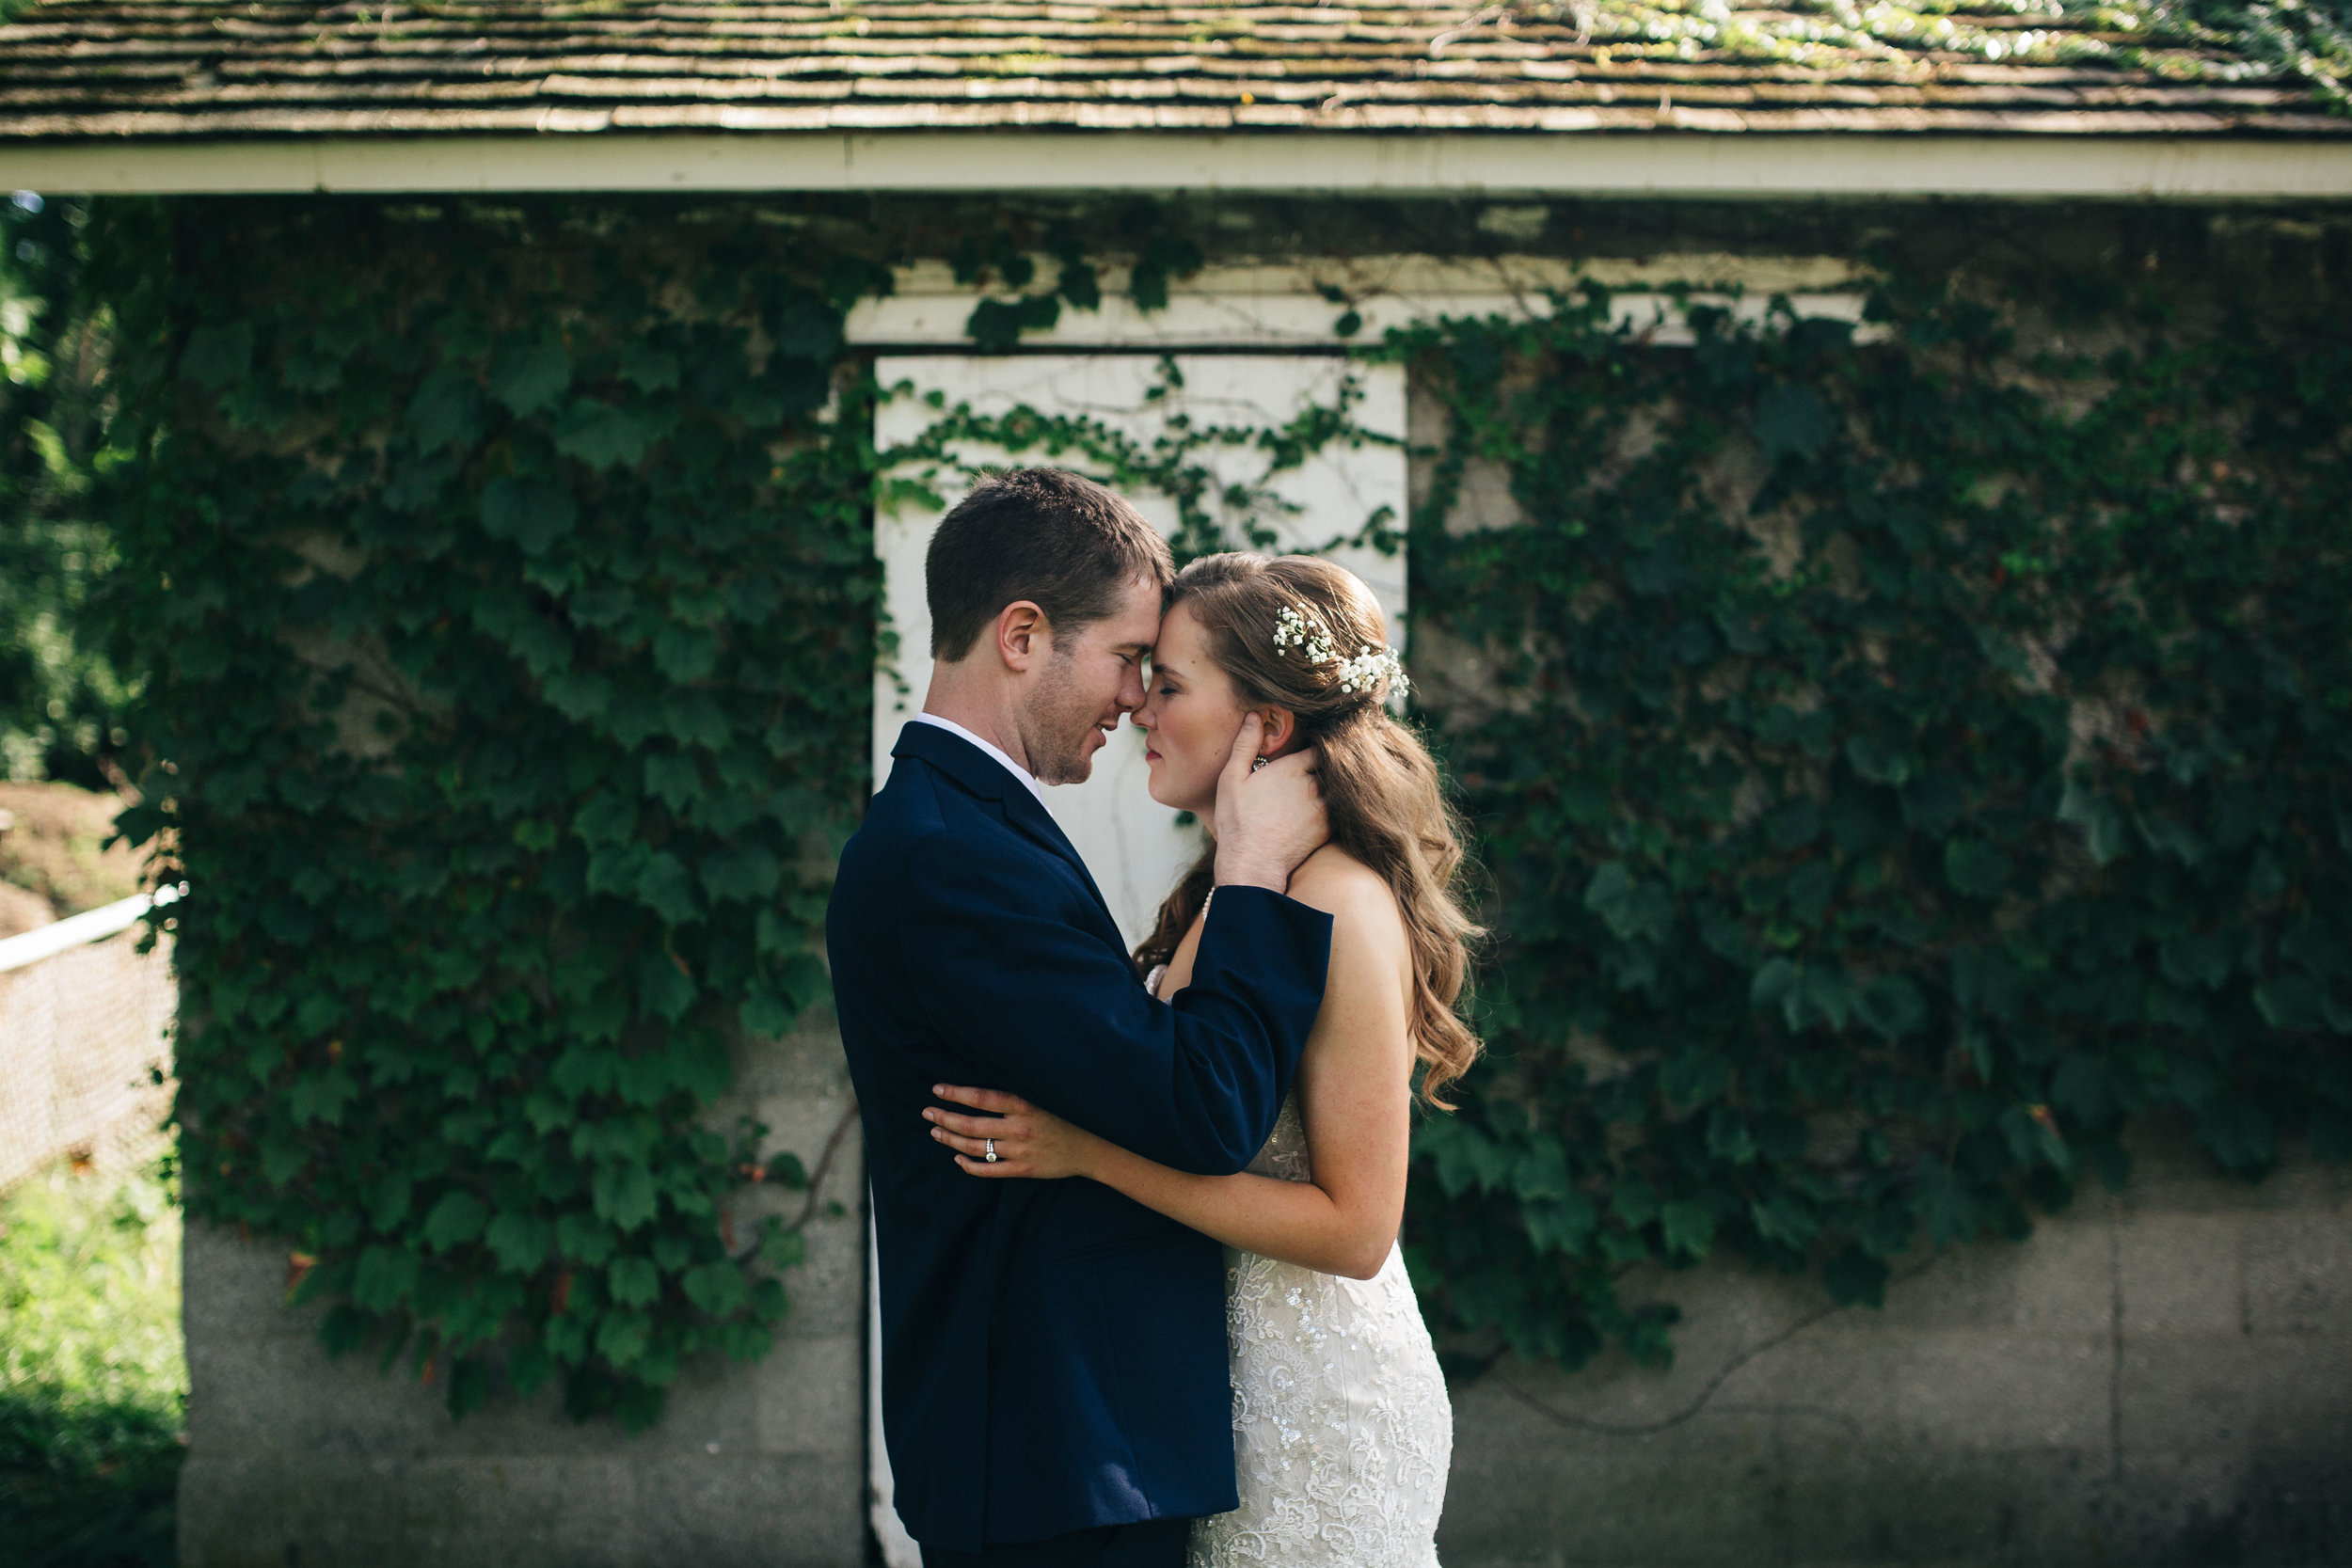 Bride and groom photography at the Wood County Historical Society.